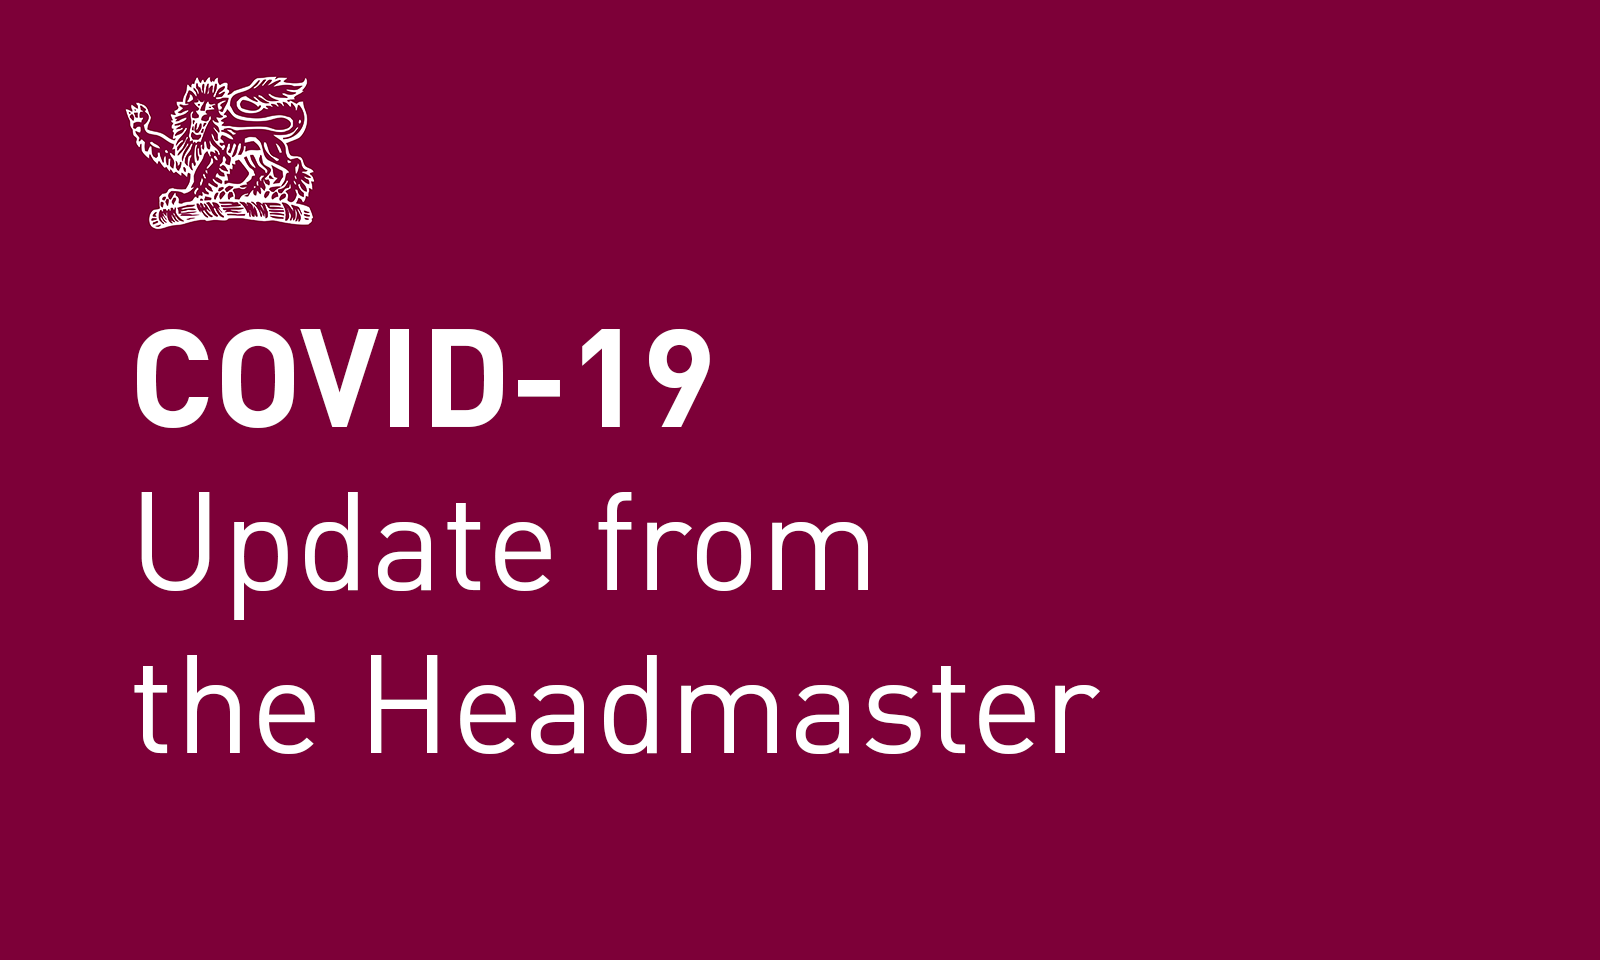 COVID-19 update from the Headmaster